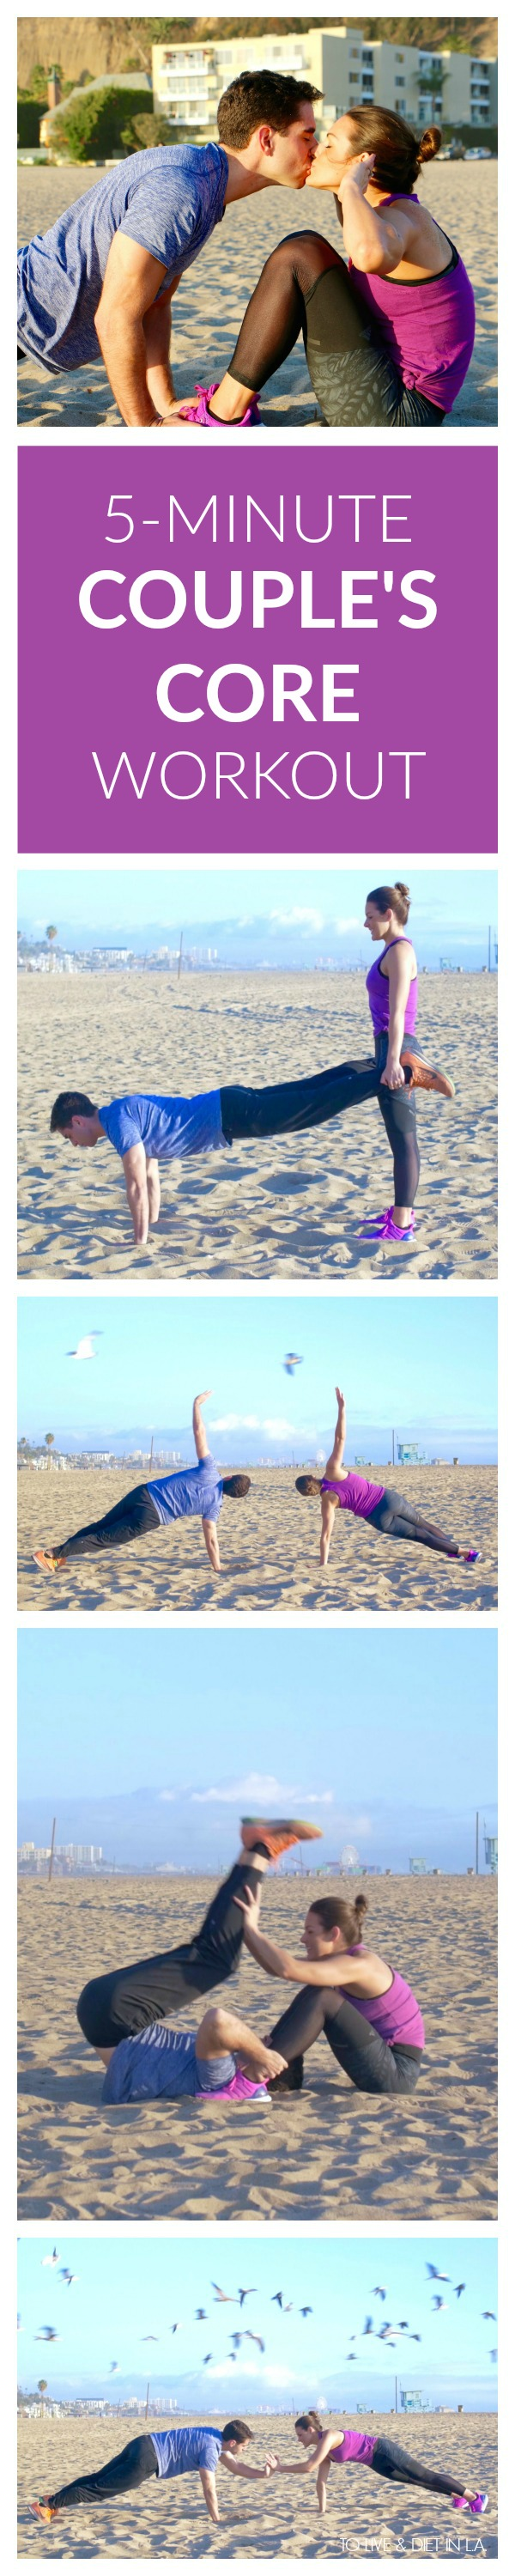 5-Minute Couple's Core Workout Video